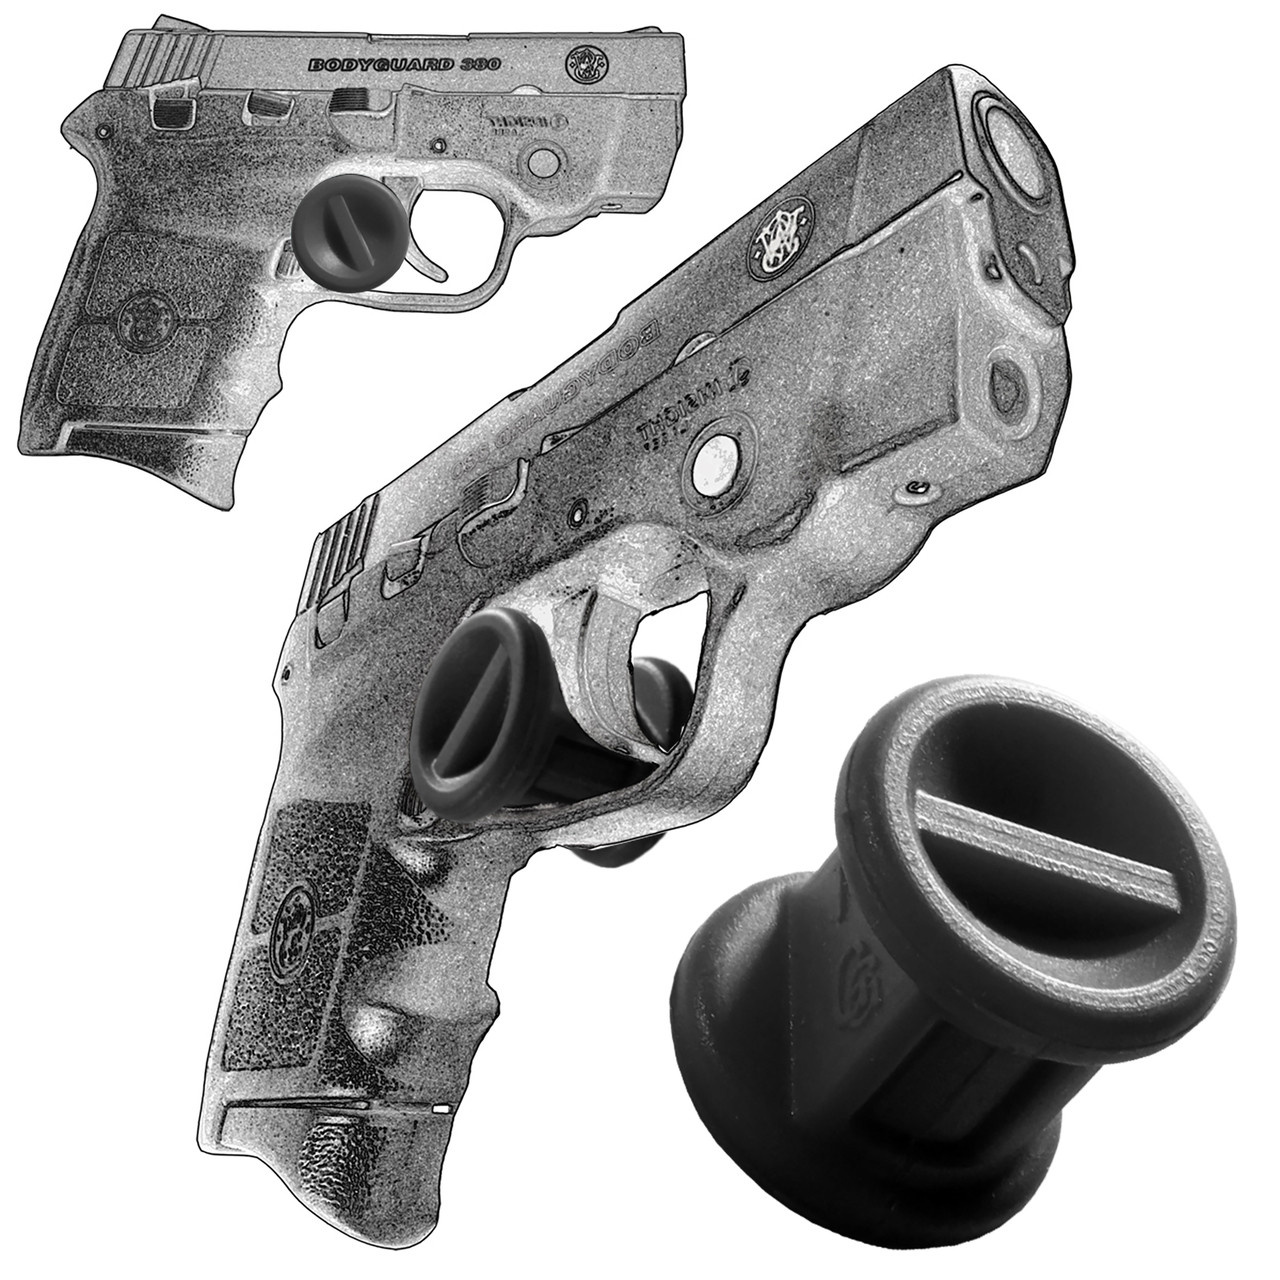 Trigger Stop Holster Fits Smith & Wesson Bodyguard 380 & M&P 380 Black s20